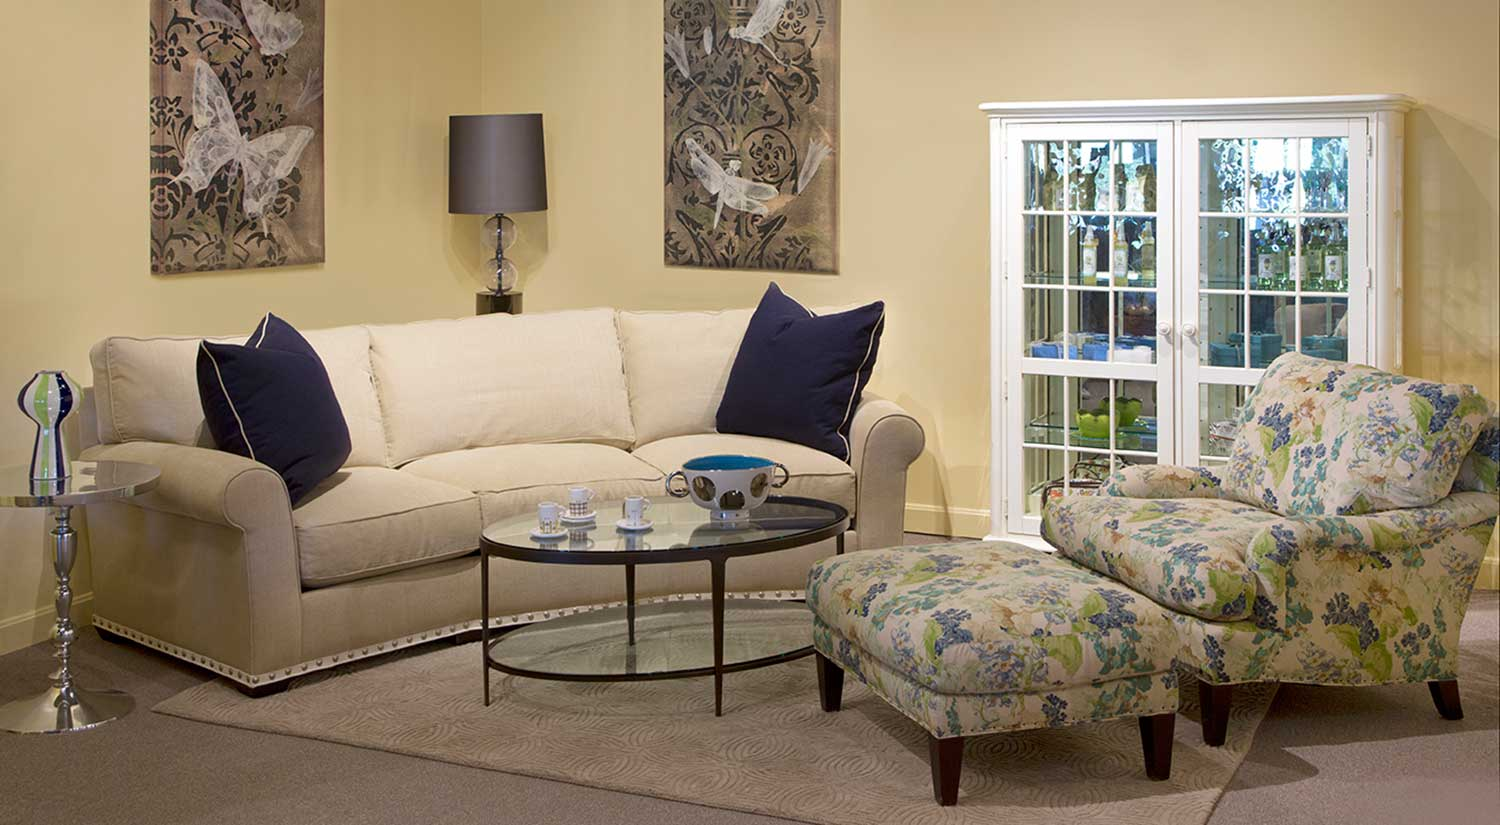 Stessless Circle Furniture - Taylor Wedge Sofa | Wedge Couches Ma